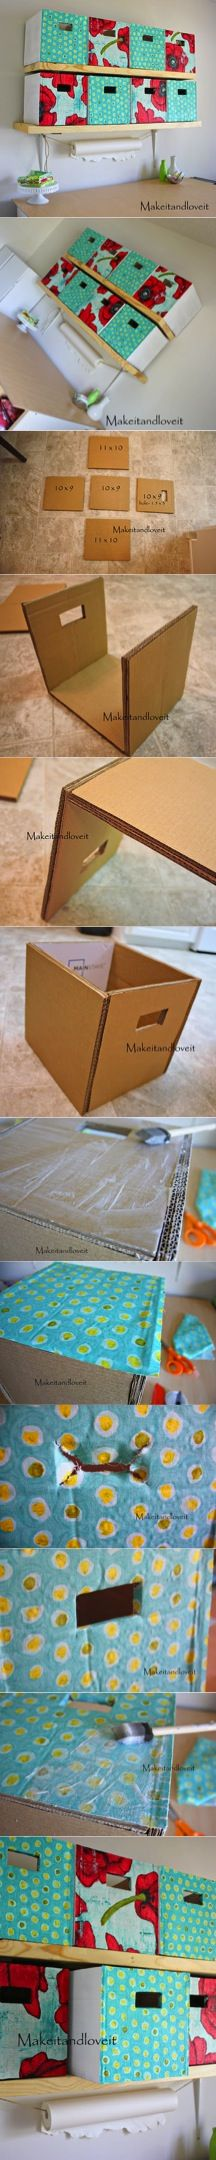 Craft Room, Part 1 (covered cardboard storage boxes)